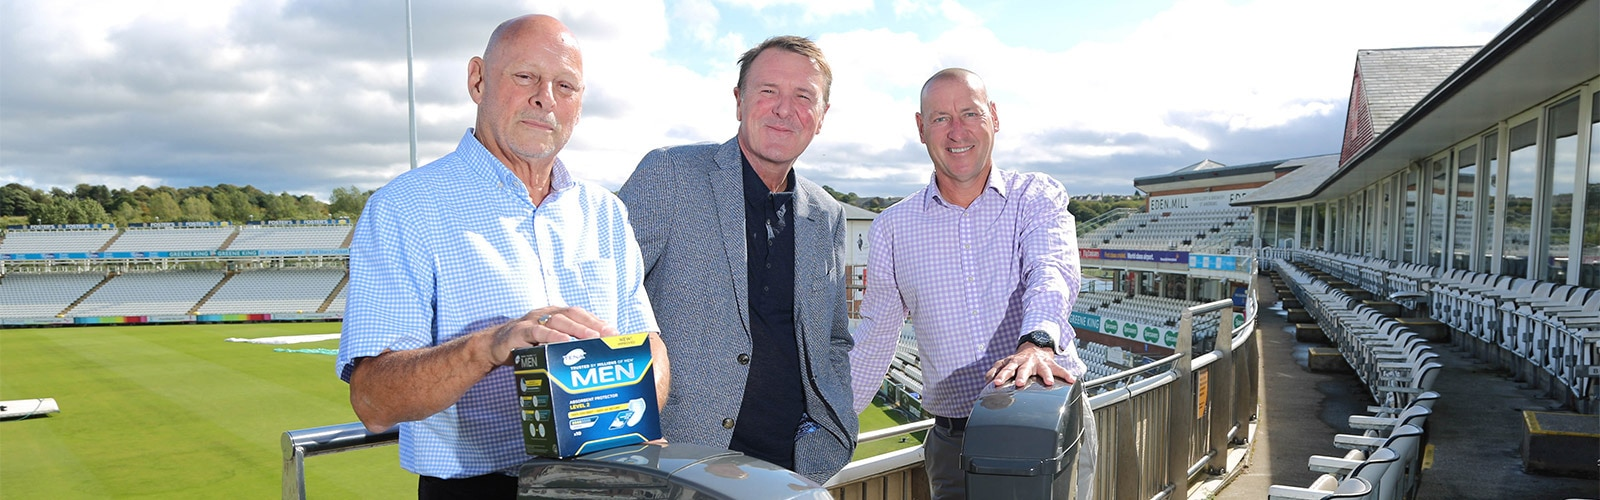 Bob White, Phil Tufnell and Tim Bostock